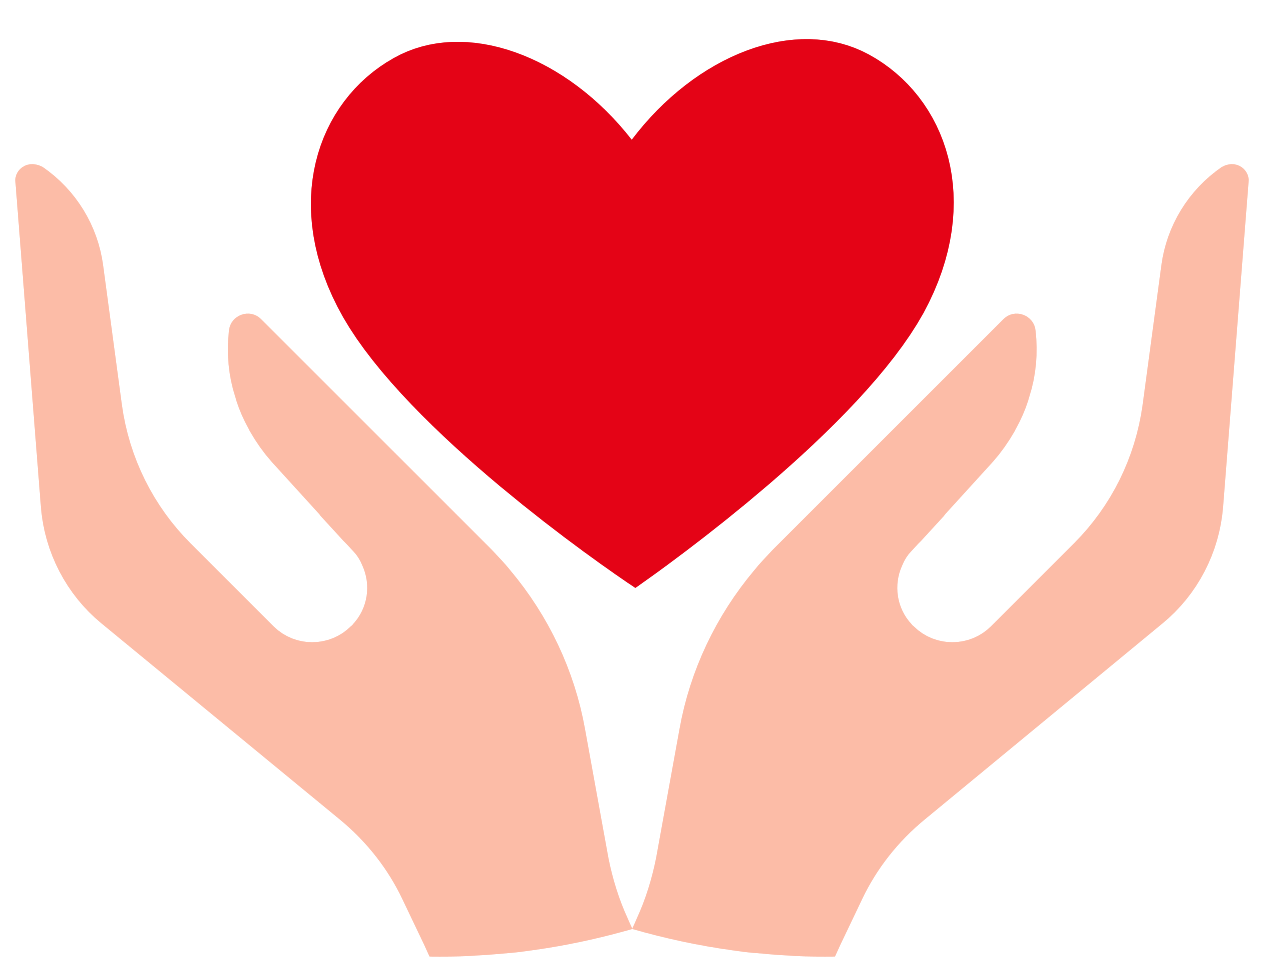 Free Heart Helping Hand Png With Transparent Background Pencil in hand hands png hand image format: free heart helping hand png with